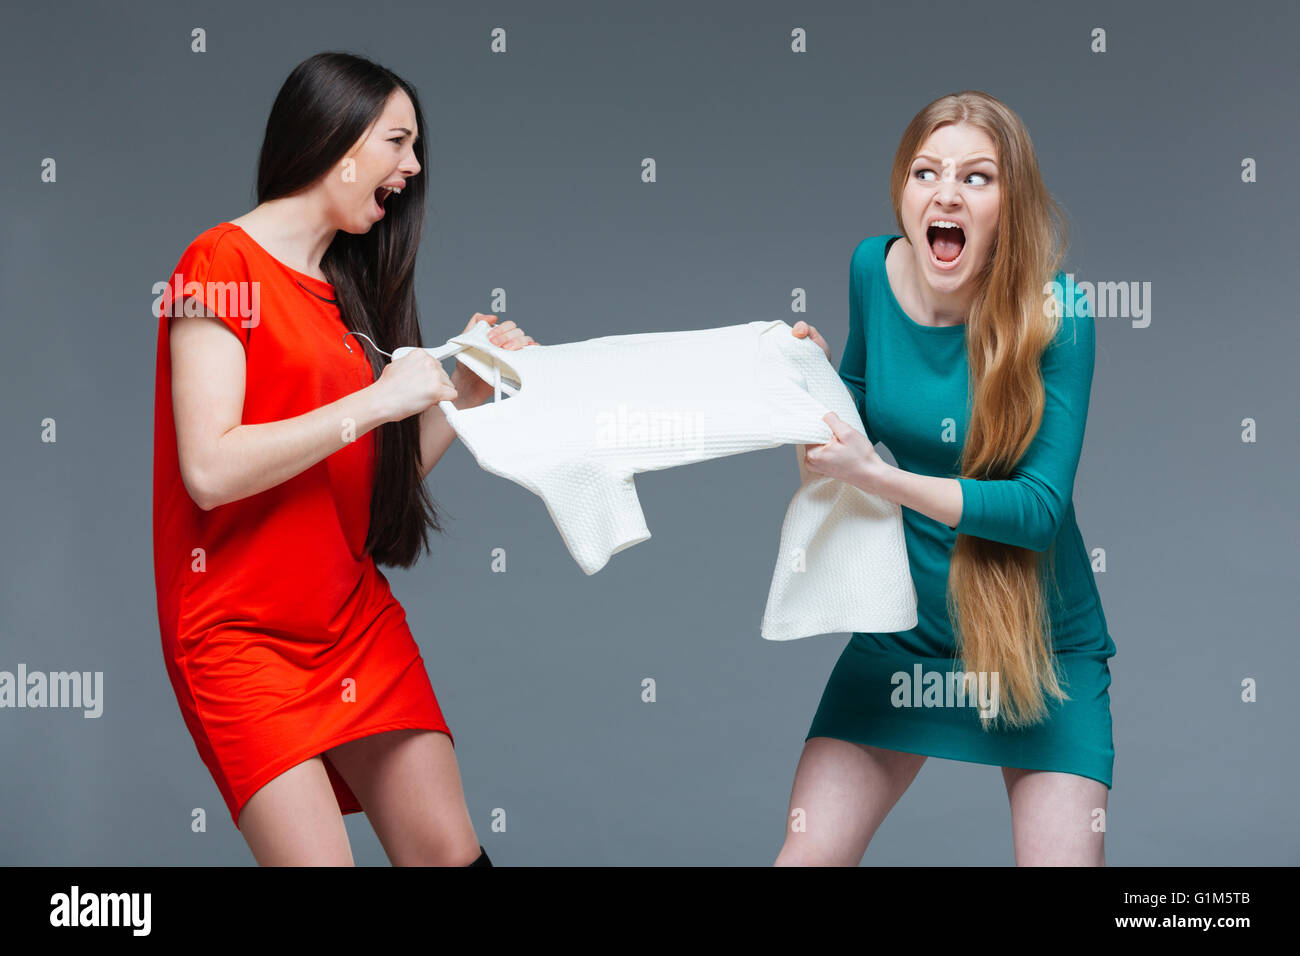 Two pretty angry young women with long hair quarreling and fighting for white dress over grey background - Stock Image